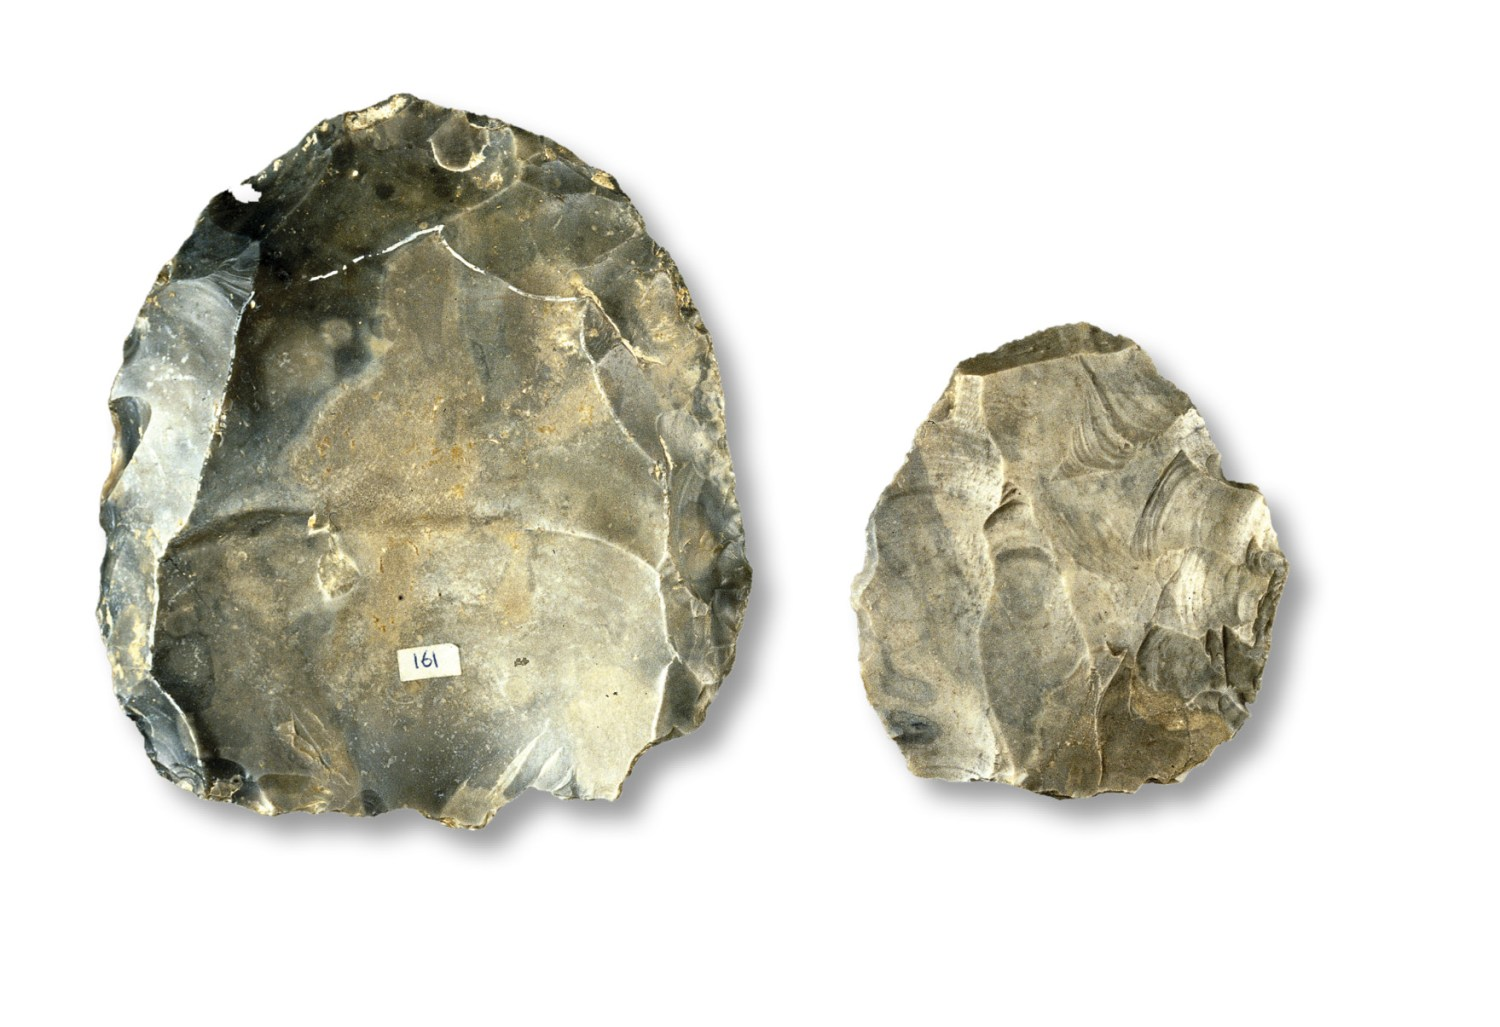 below A classic example of Levallois technology: a core that has been prepared by striking off small shaping flakes. This flint example is from the collections of the British Museum.